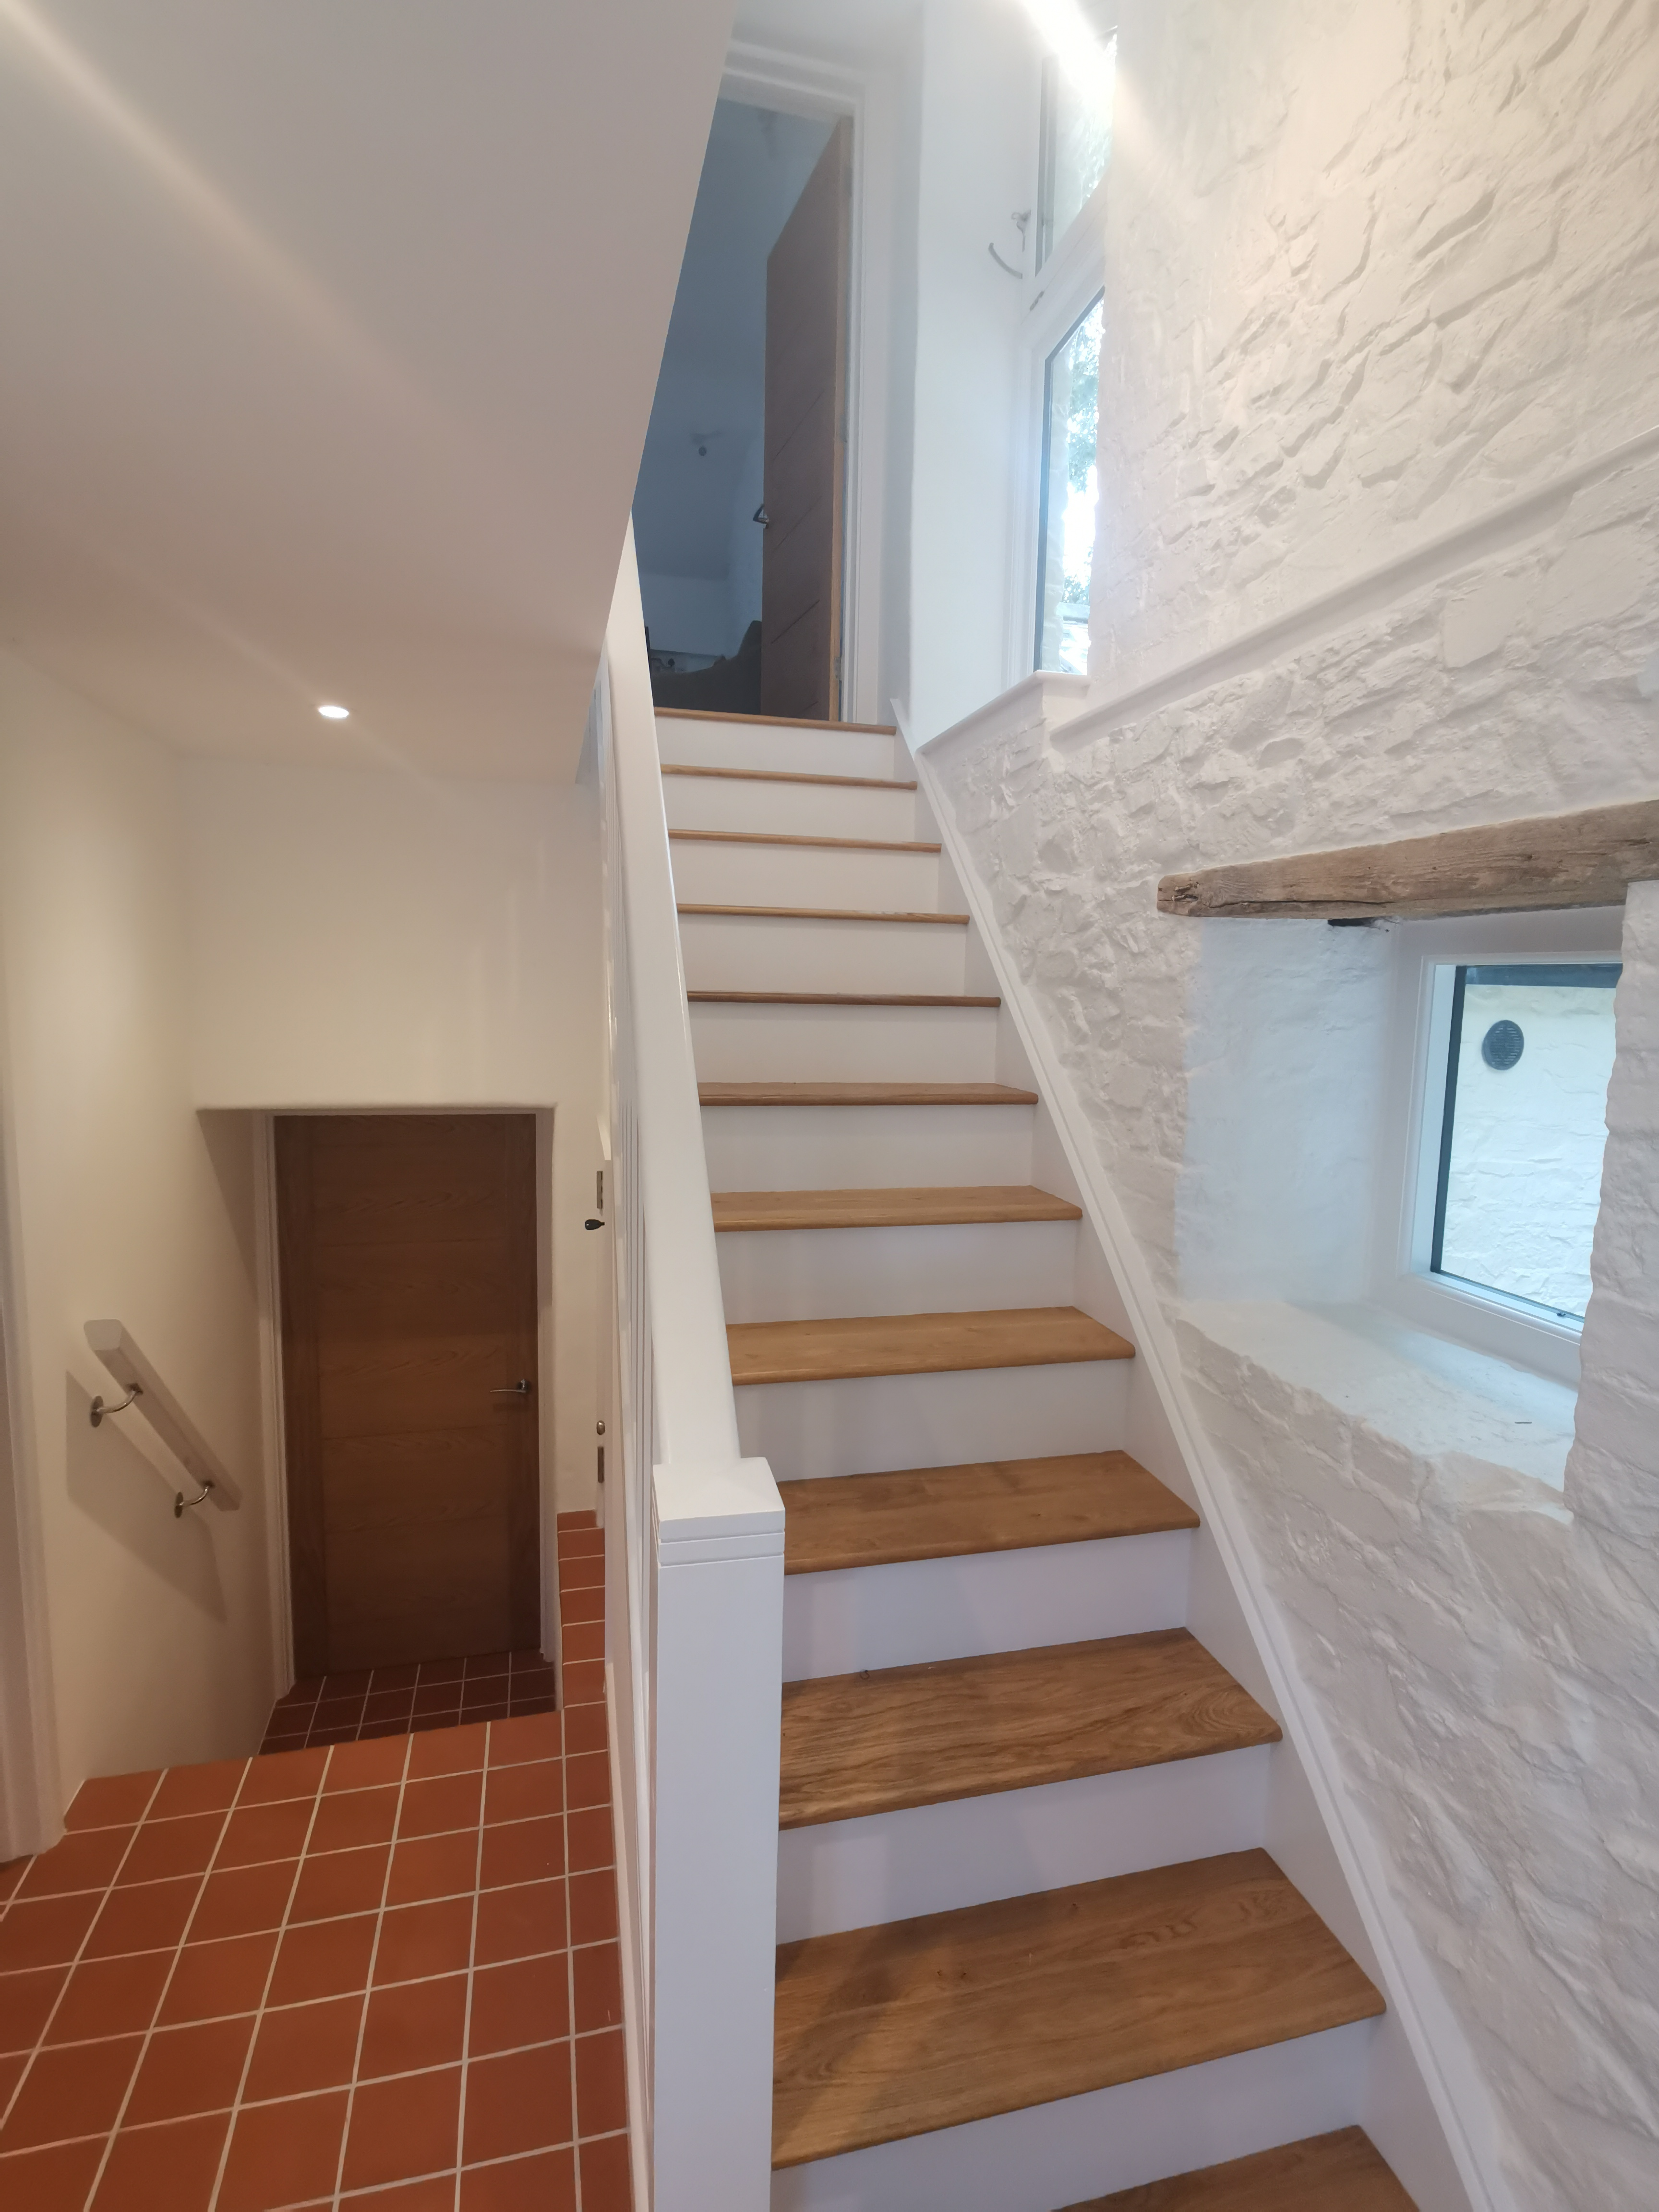 Painted stairwell and hallway